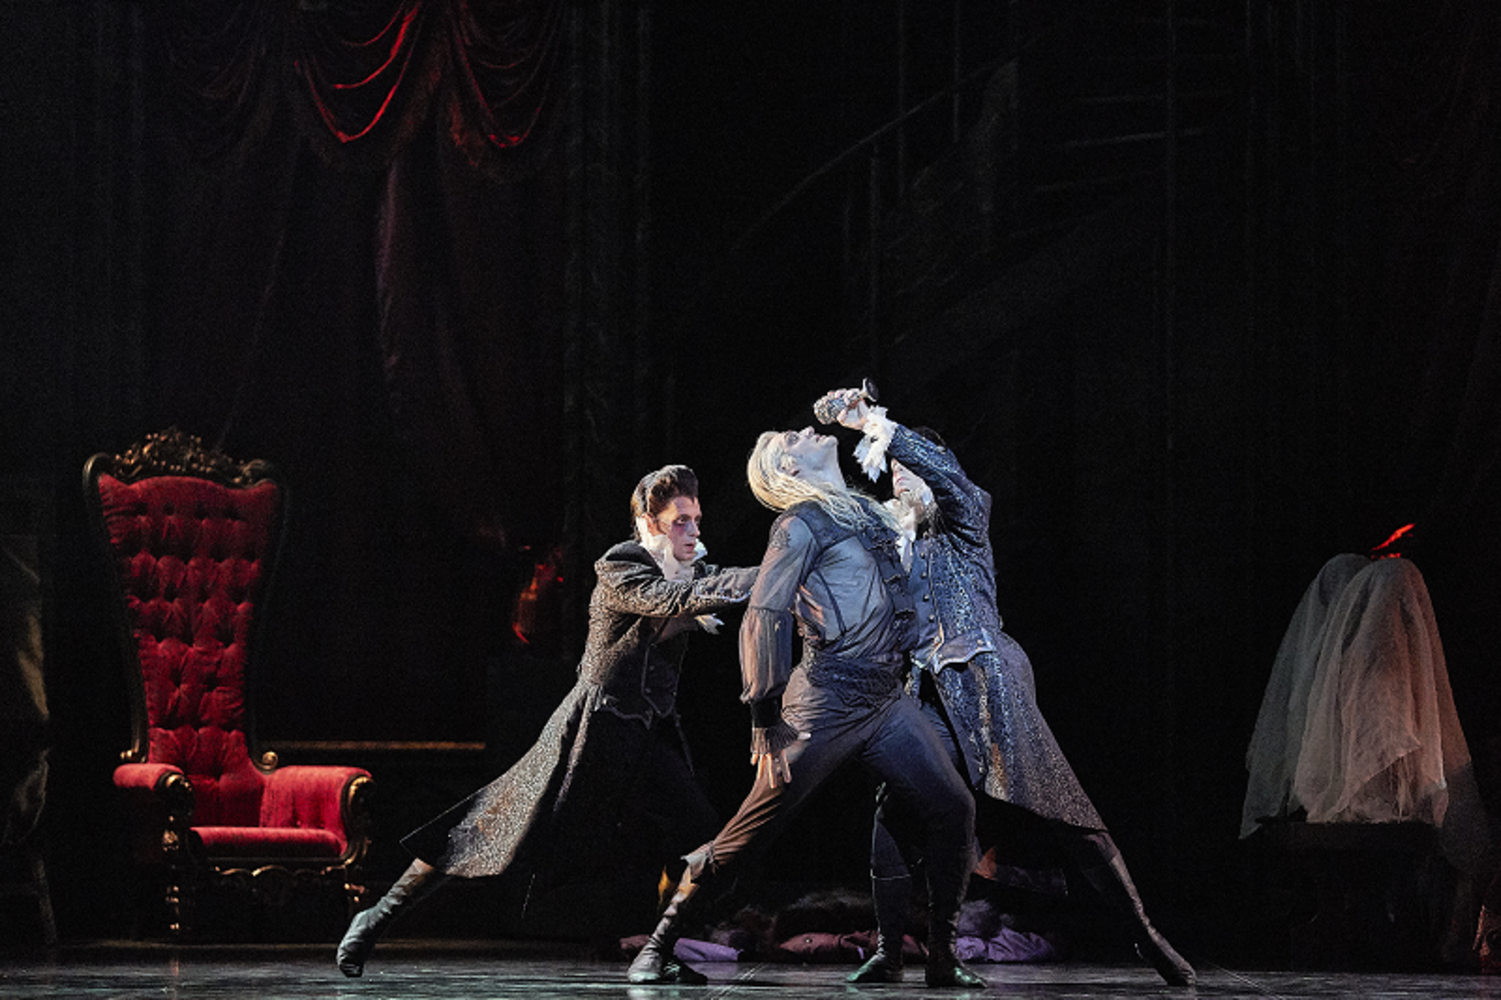 Pictured: Aurelien Scannella, Matthew Edwardson, and Oliver Edwardson in West Australian Ballet's production of Dracula choreographed by Krzysztof Pastor. Photo: Jon Green